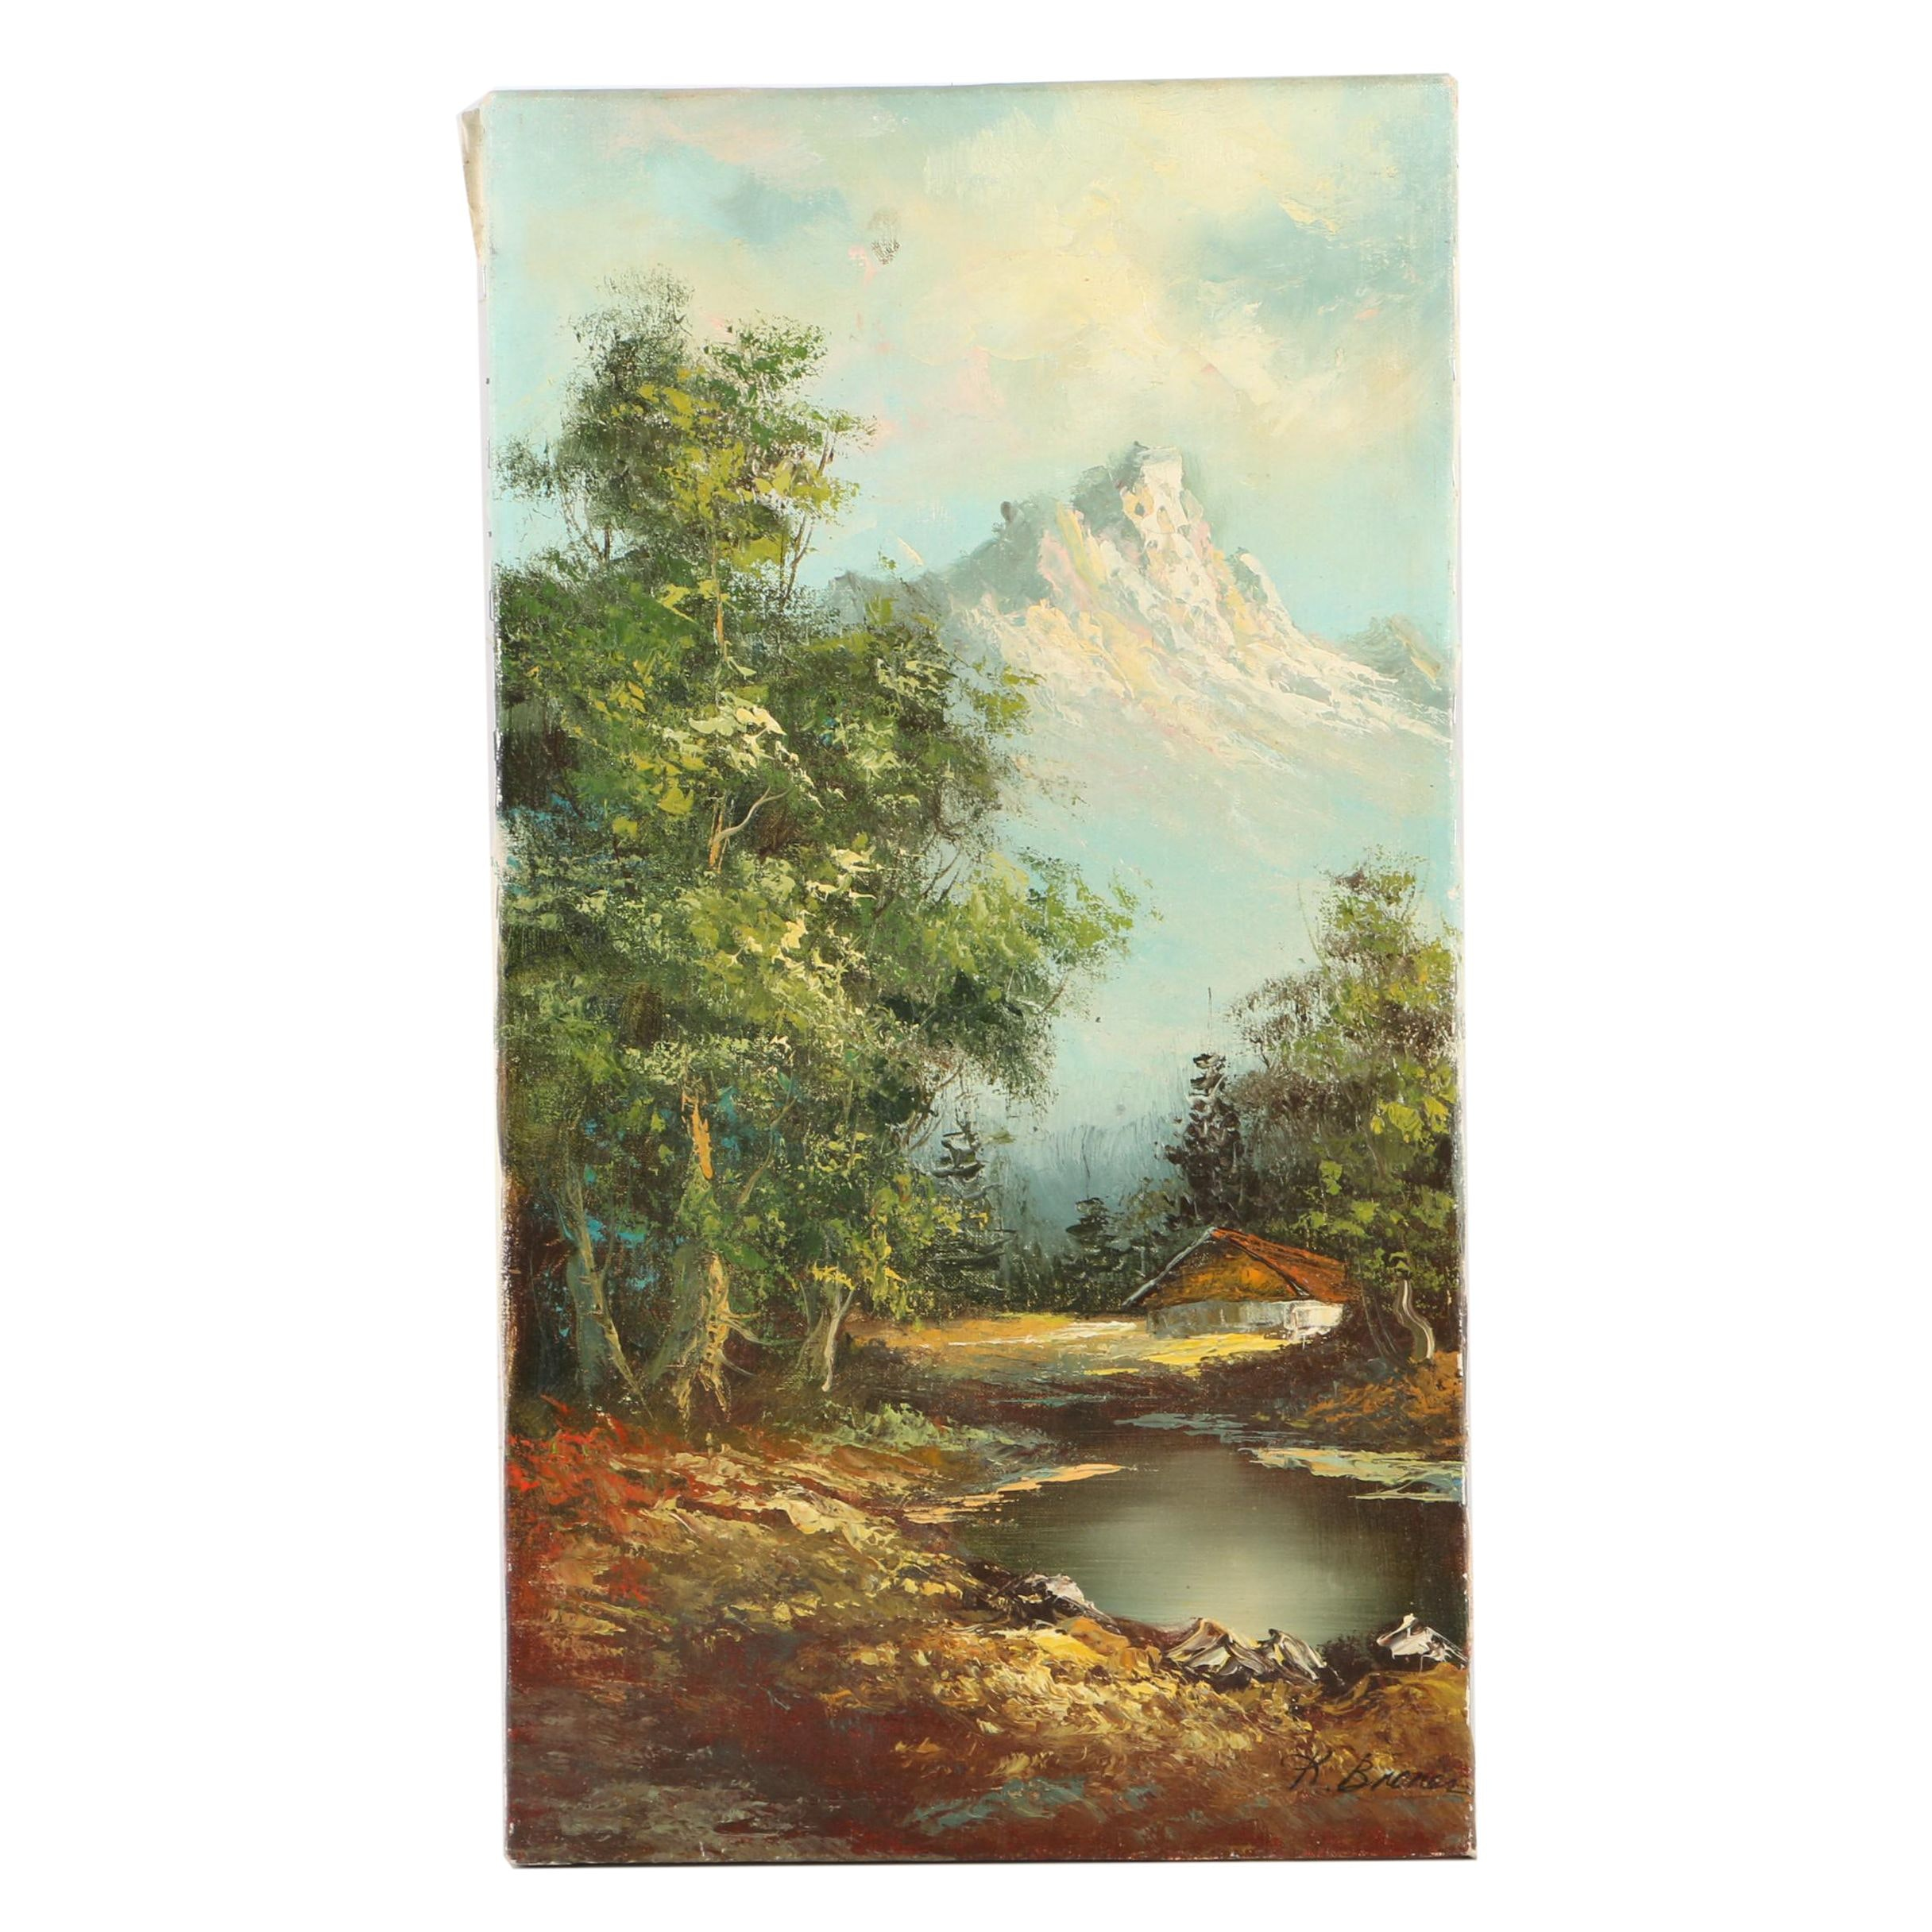 K. Broner Oil Painting on Canvas of a Mountain Landscape